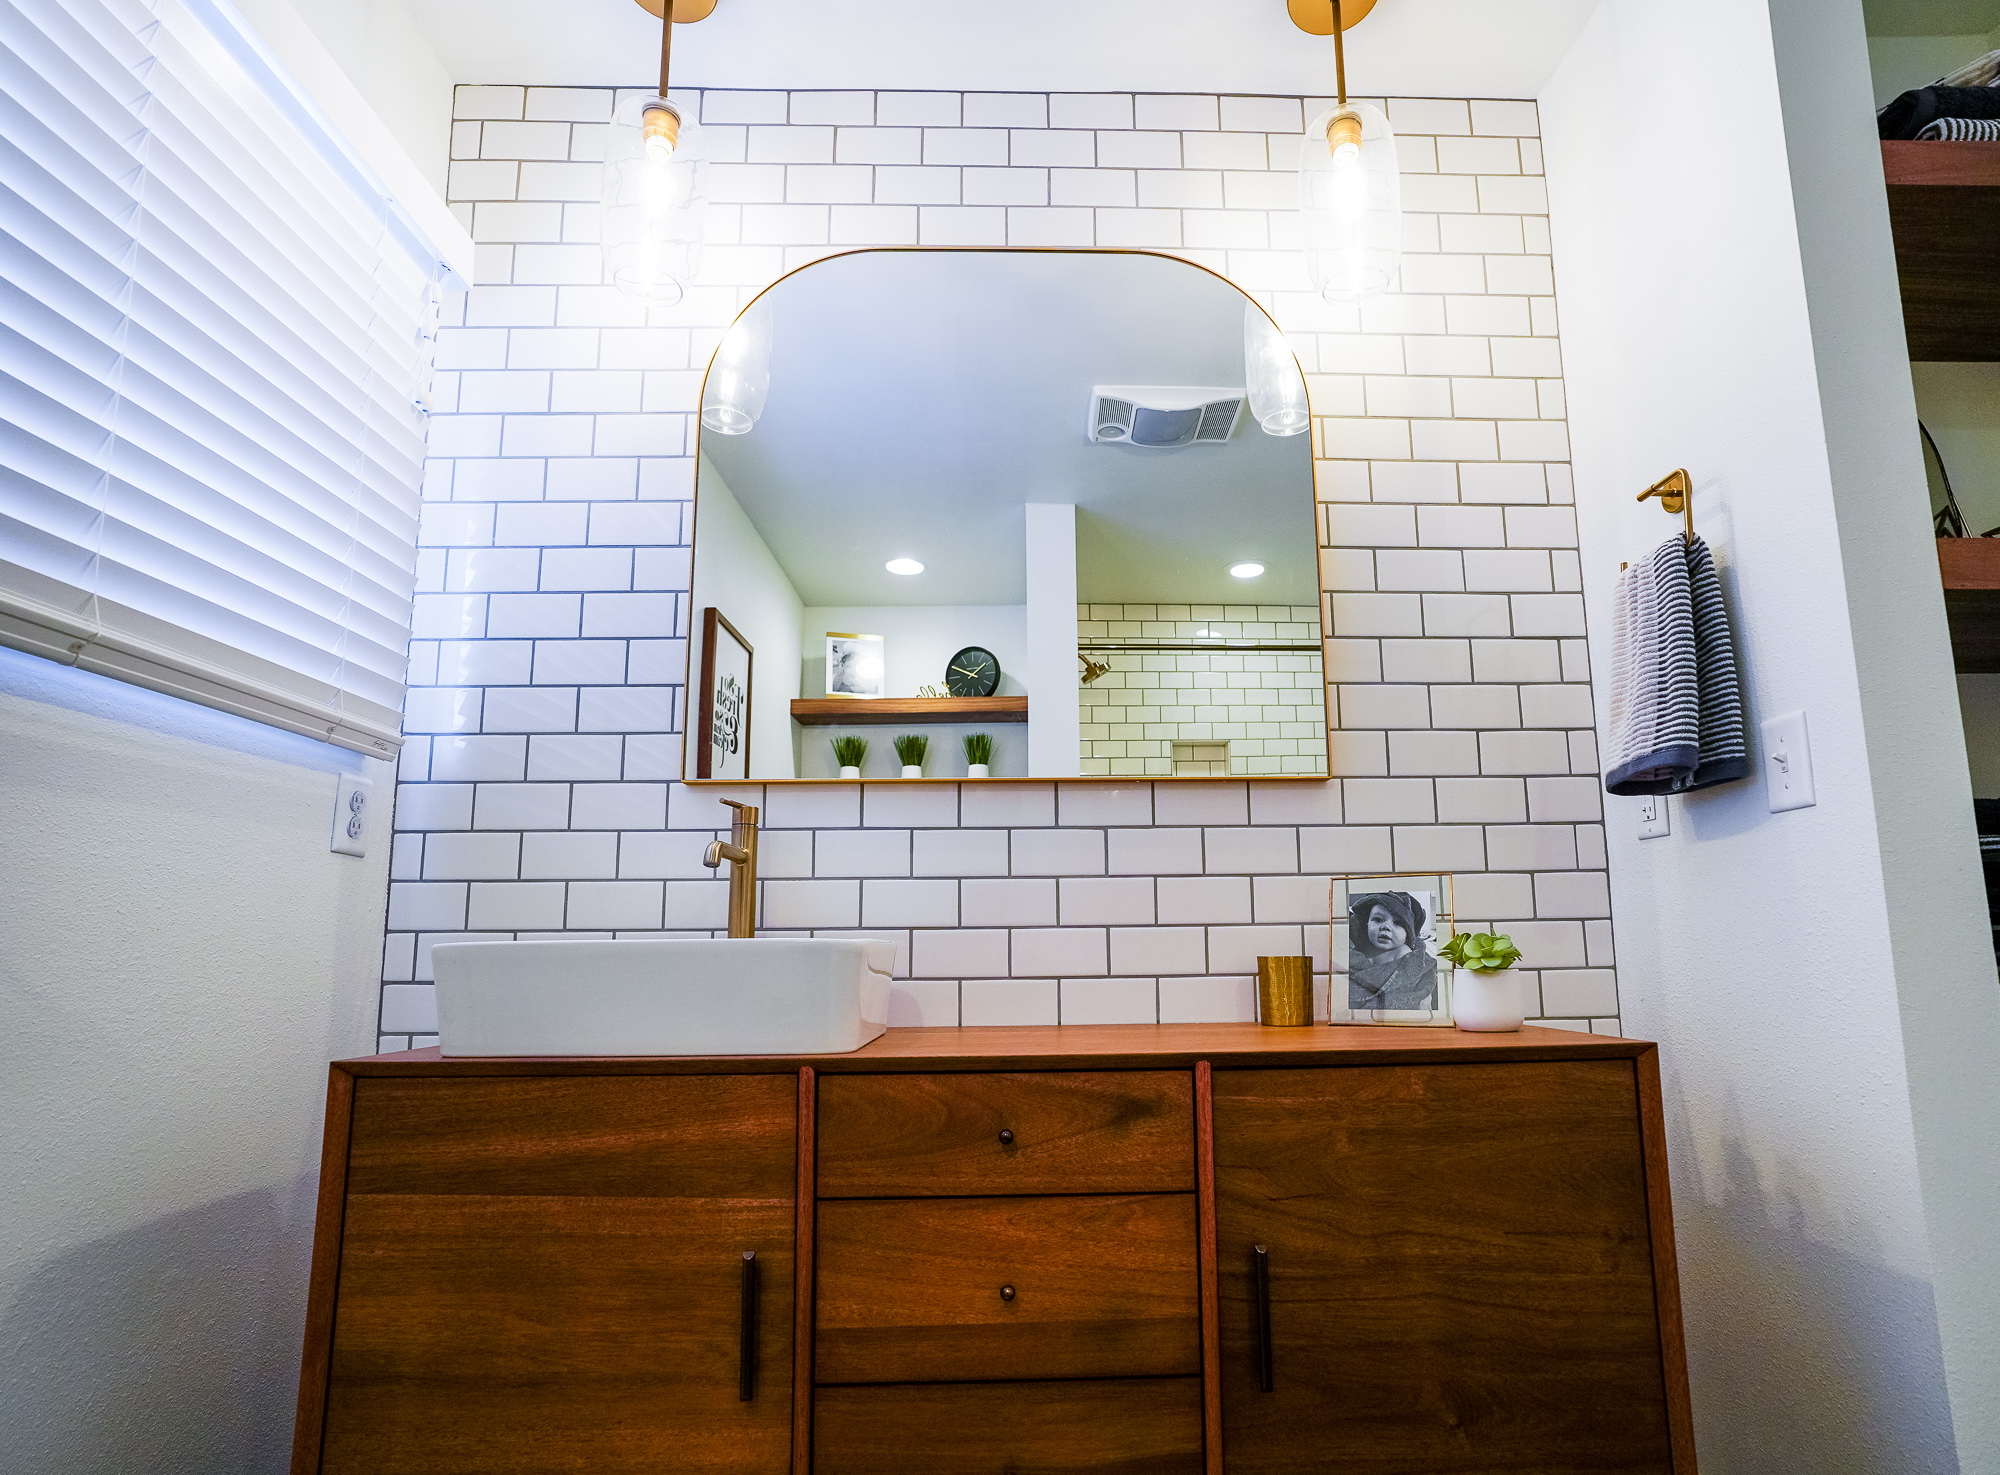 Modern Contemporary - This started as a tiny master bathroom and clunky hallway bathroom. We combined the two into a hallway bathroom perfect for the needs of a family with young kids.